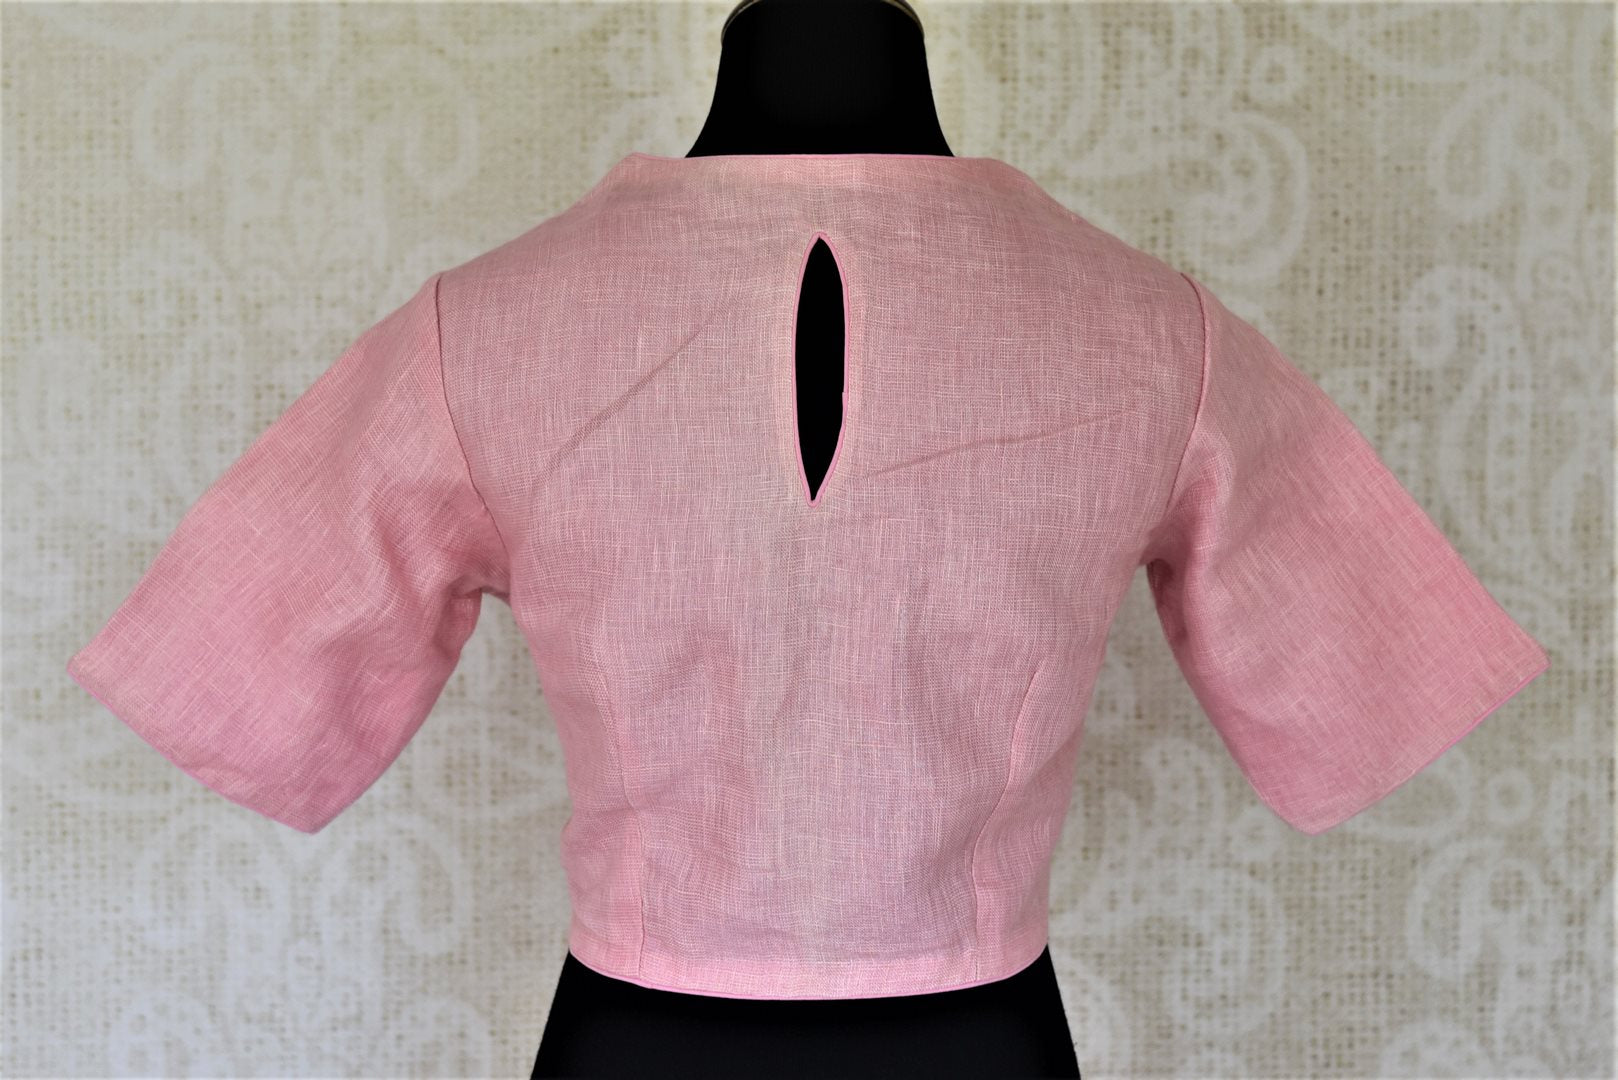 Shop stunning solid pink linen saree blouse online in USA. Complete your ethnic saree look with designer blouses, readymade sari blouse, embroidered saree blouse from Pure Elegance Indian saree store in USA.-back